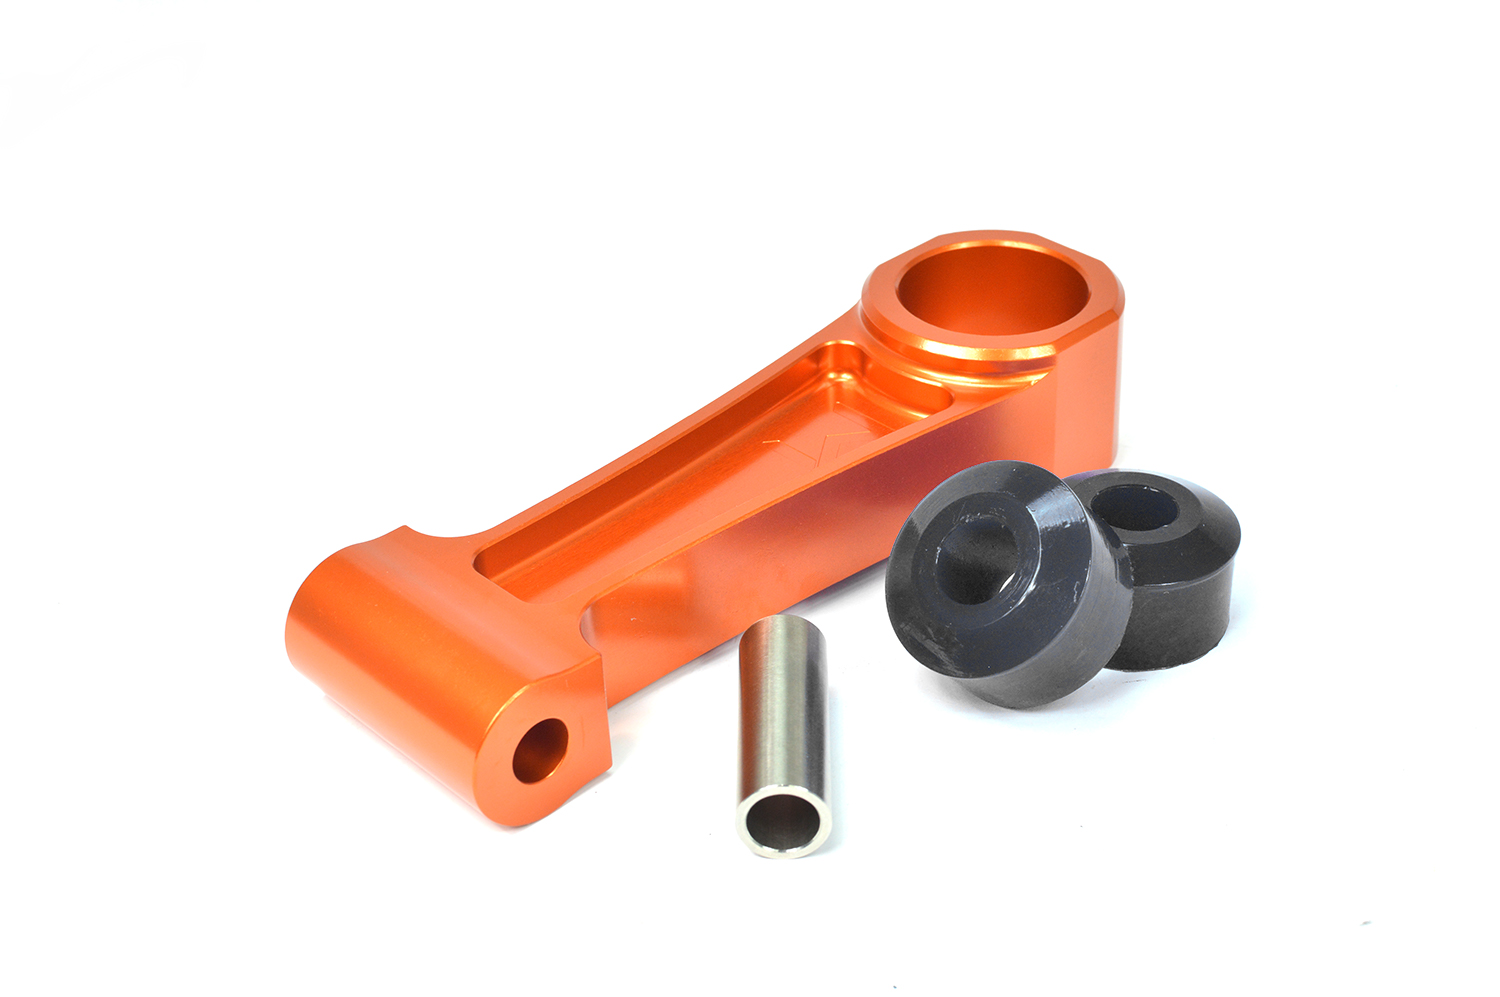 Stainless steel sleeve is used inside the polyurethane pucks for superior corrosion resistance and strength